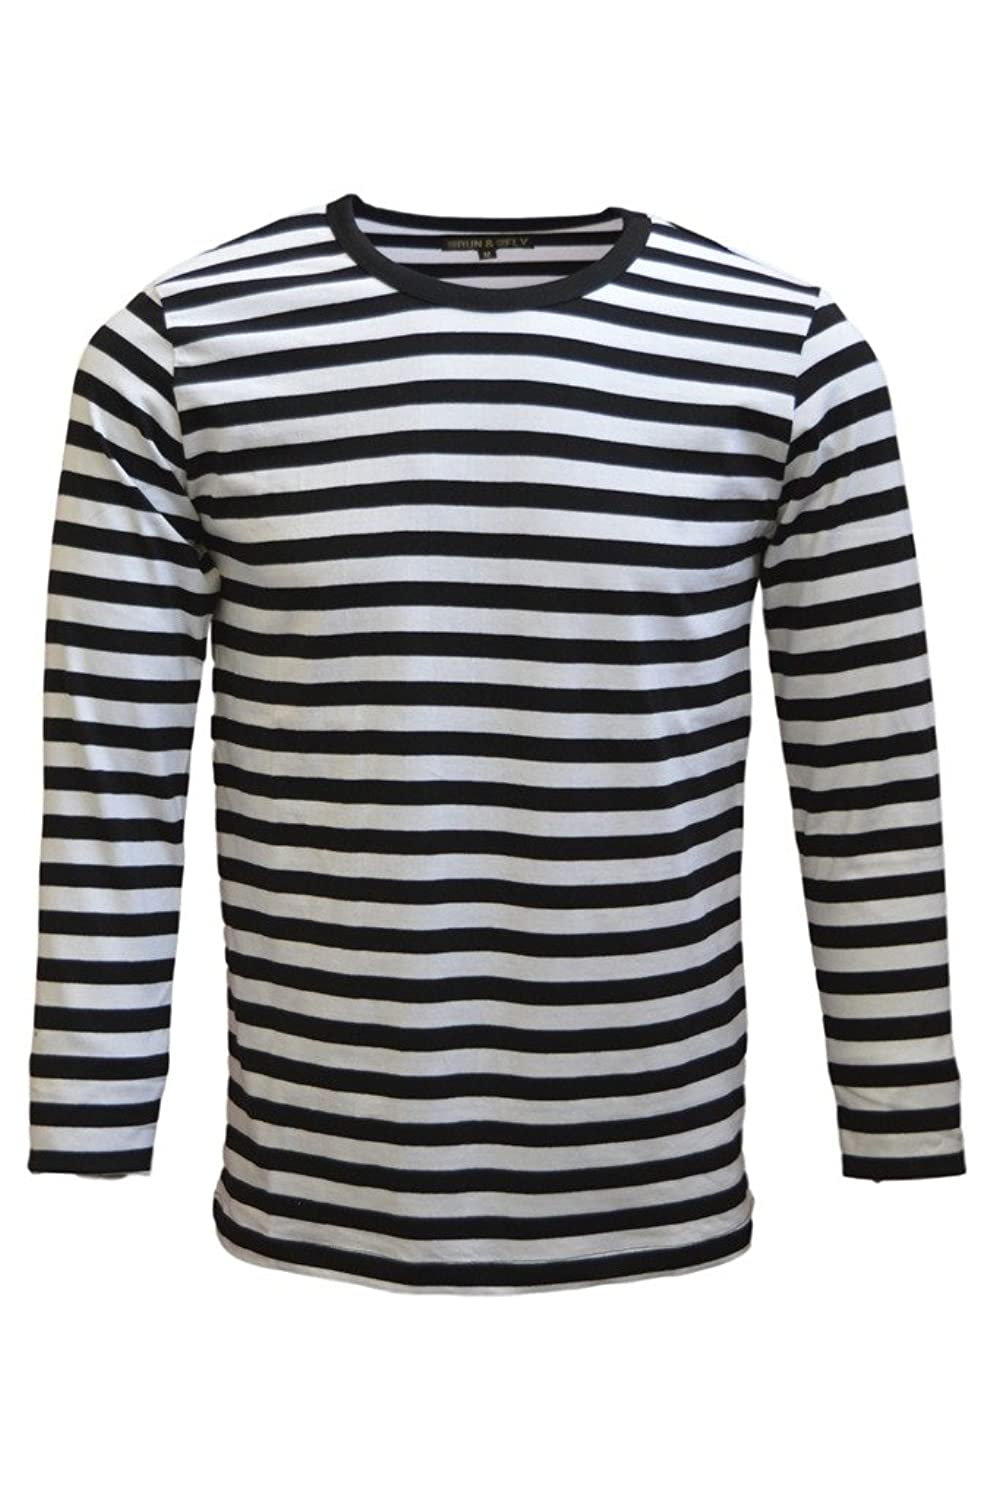 1960s Inspired Fashion: Recreate the Look Mens 60s Retro Black & White Striped Long Sleeve T Shirt $19.95 AT vintagedancer.com